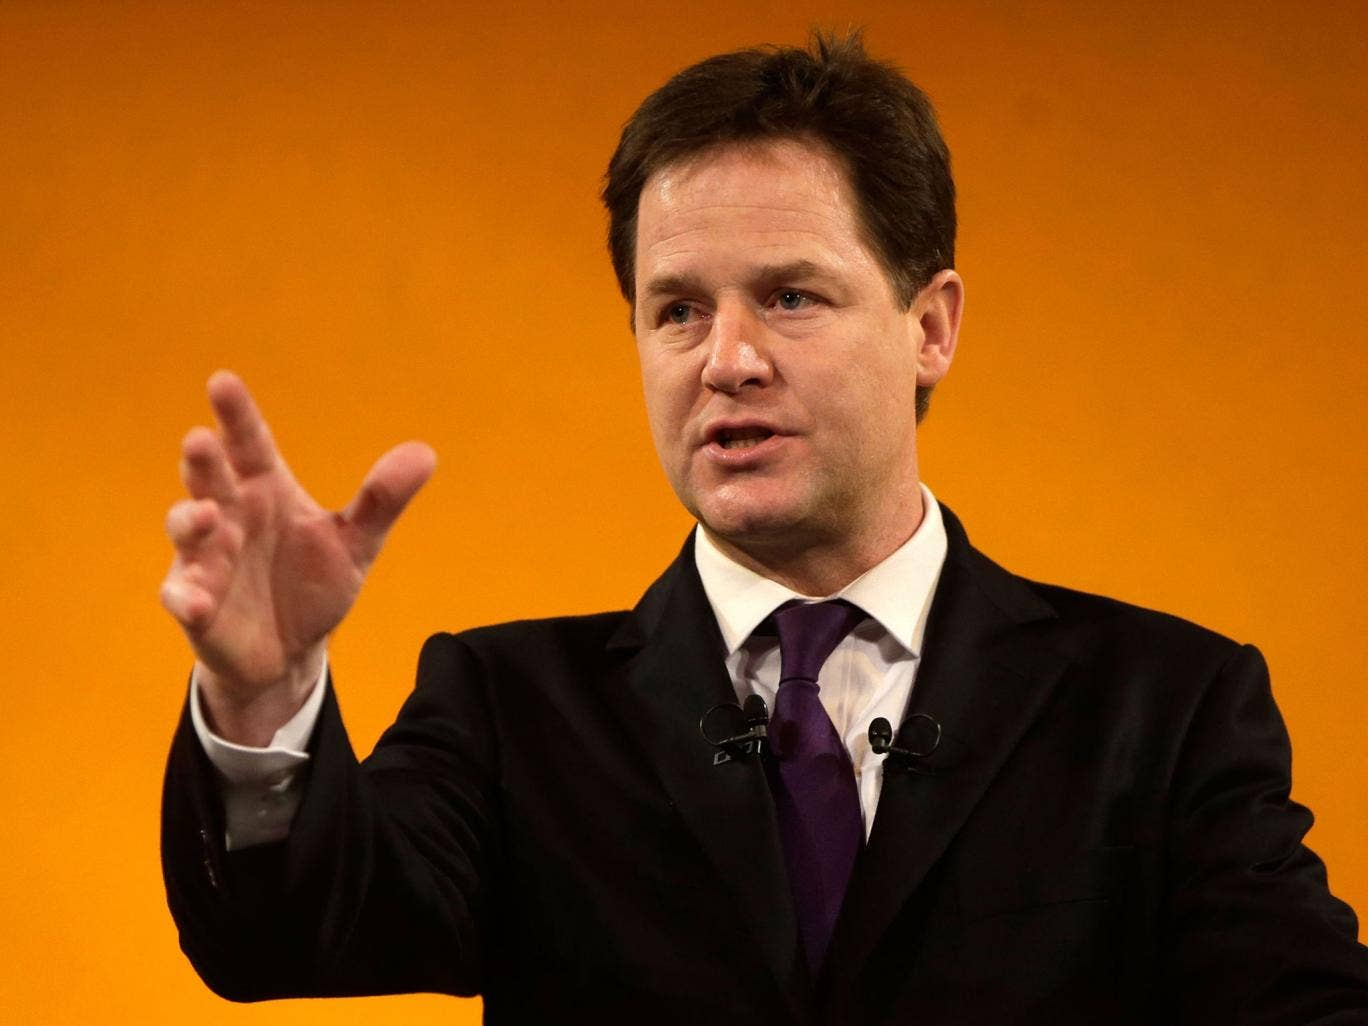 Nick Clegg will veto any attempt by the Conservatives to appoint a Eurosceptic candidate to become Britain's next EU Commissioner